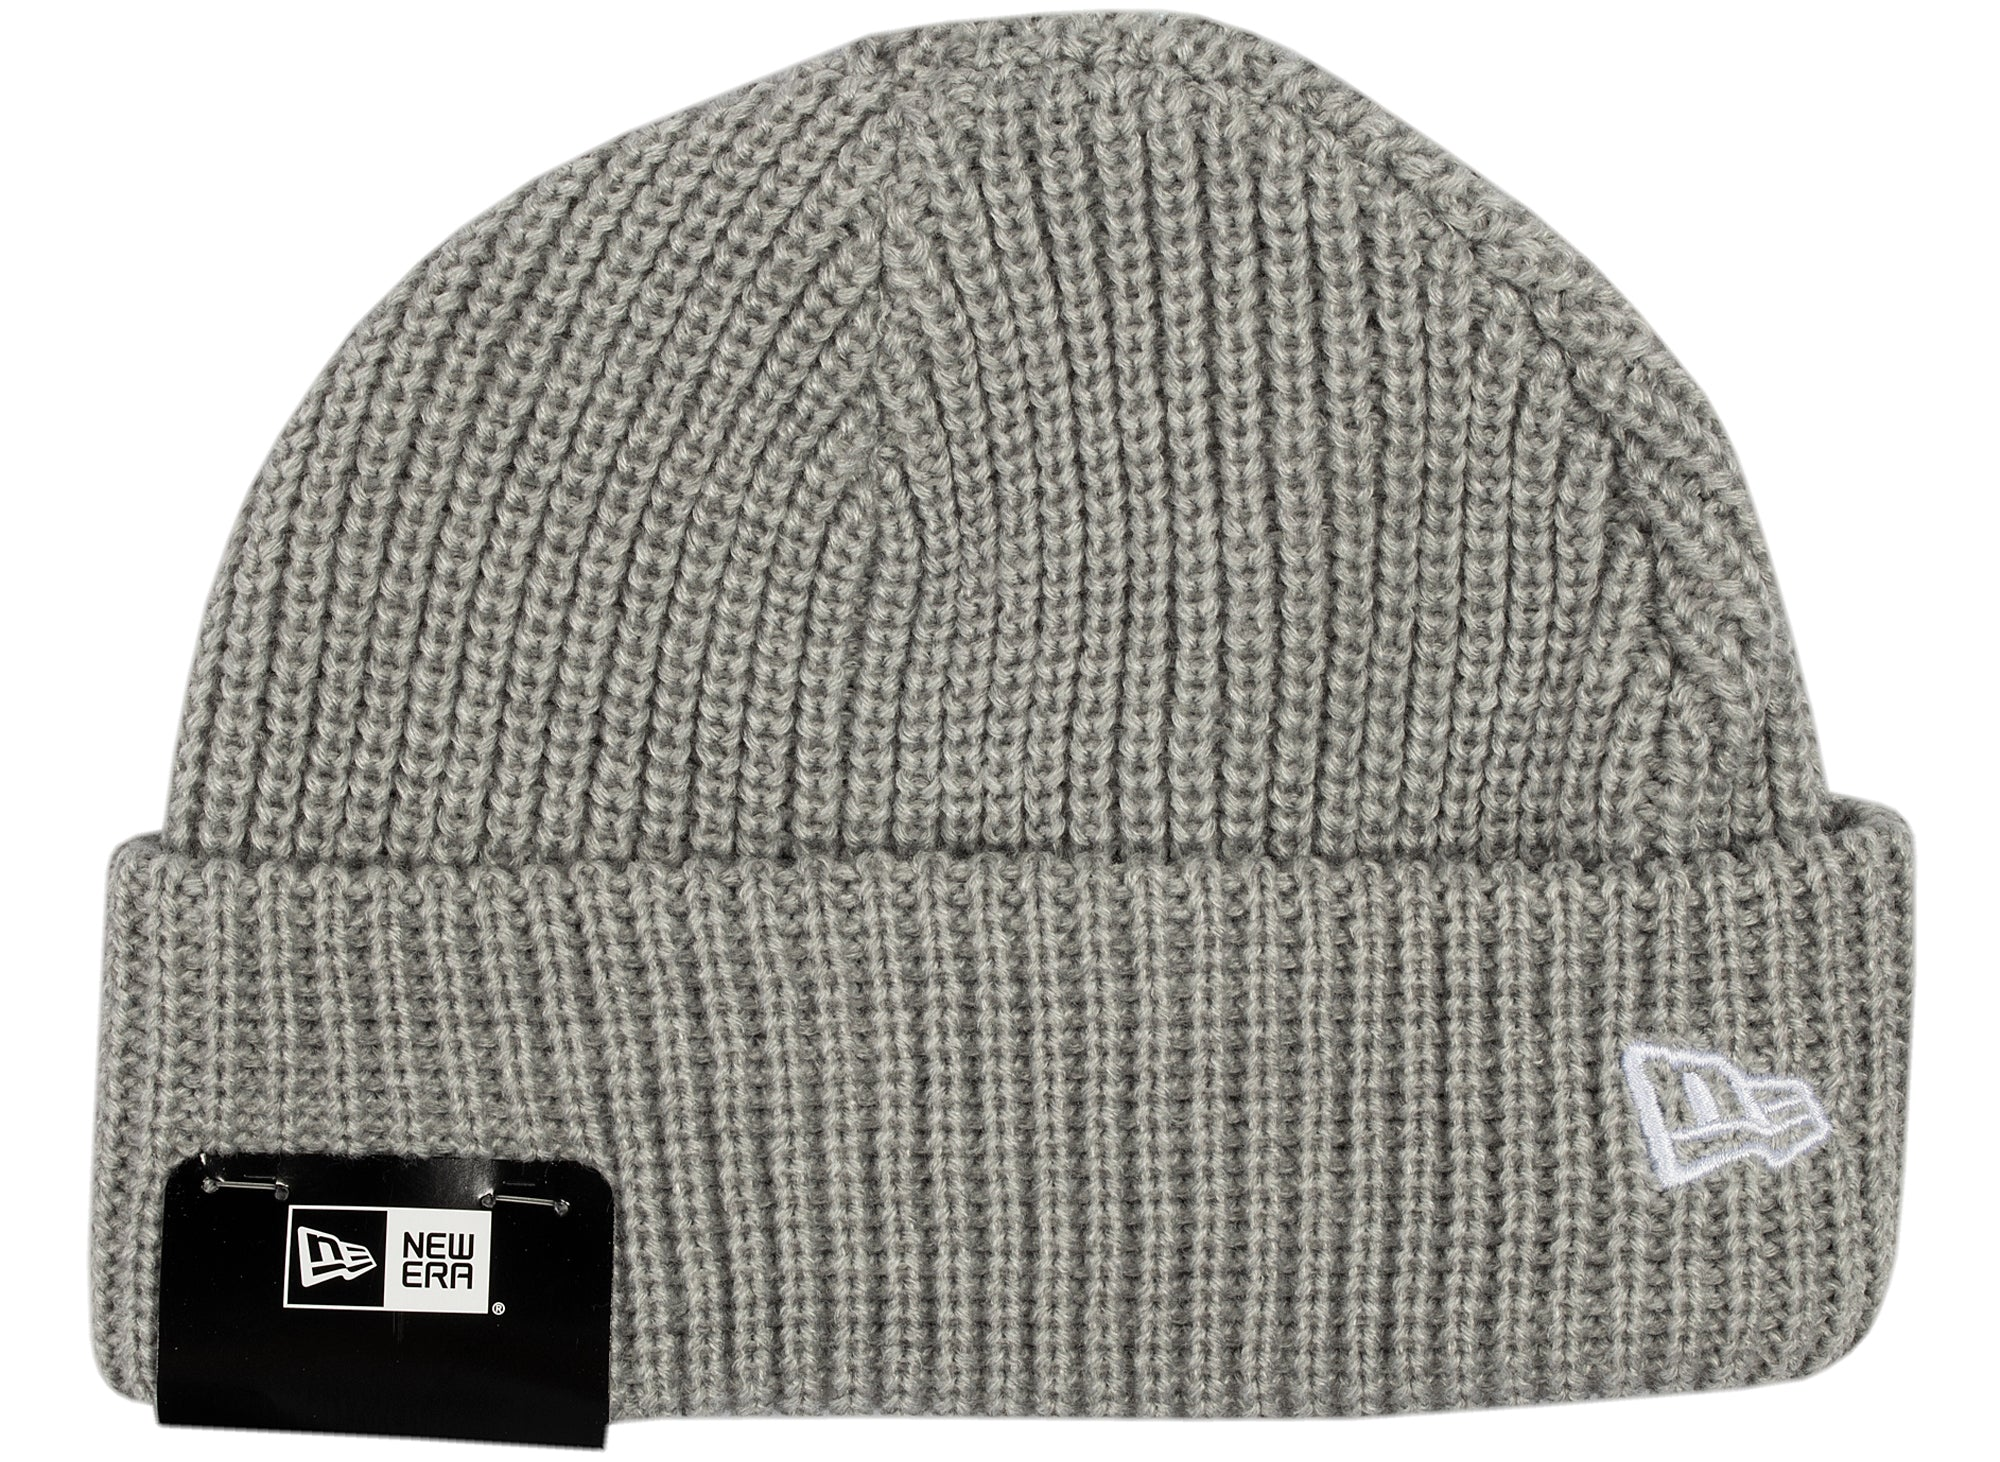 New Era Knit Skully Cap in Grey